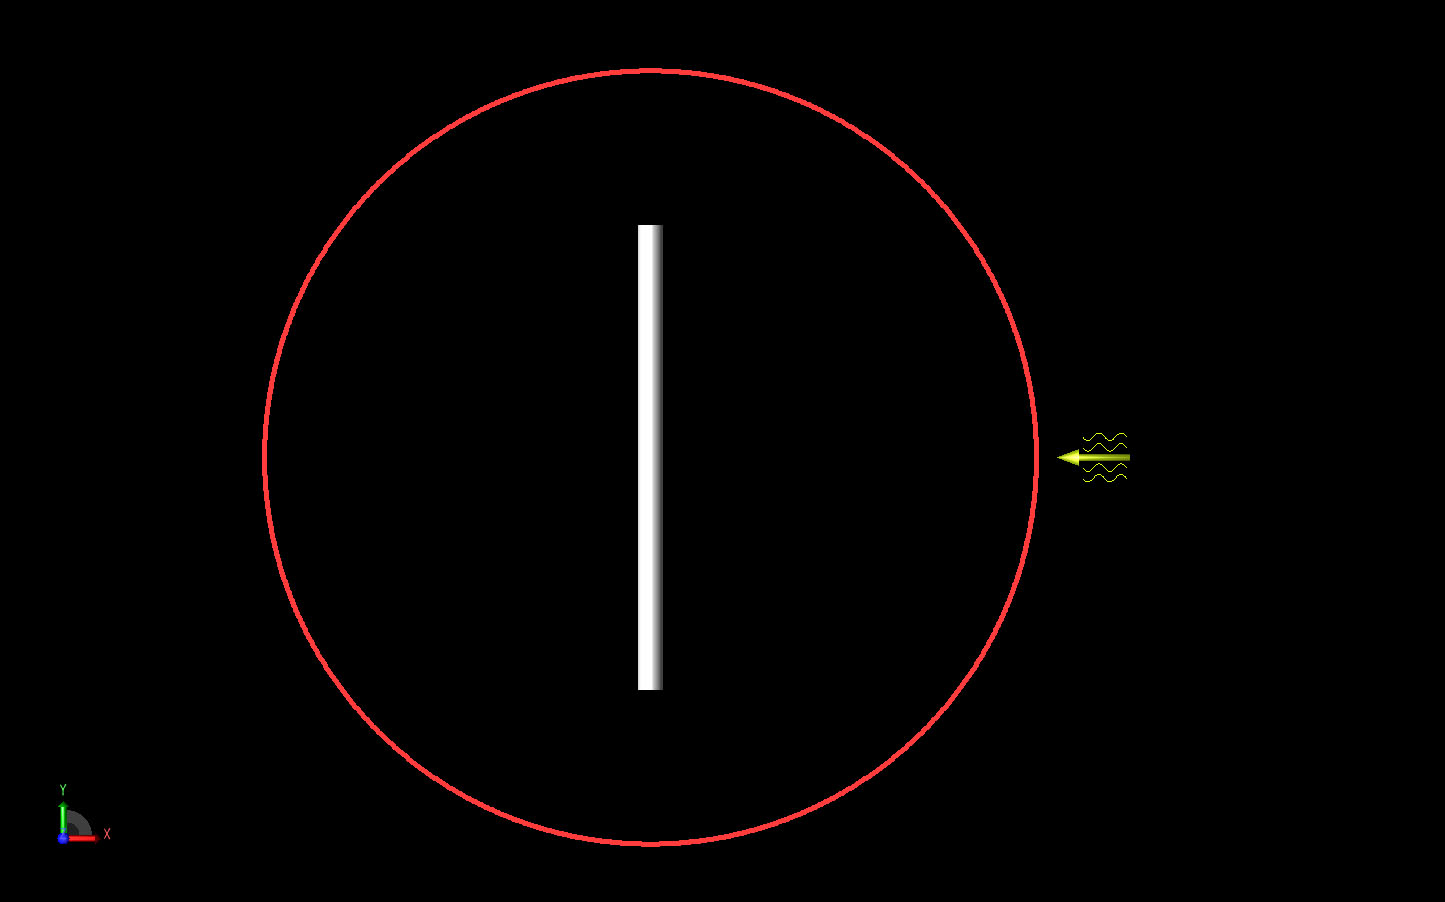 Figure 1  The cylinder geometry is shown oriented along the Y axis. The incident plane wave is shown as a yellow arrow to the right. The red circle represents the far field pattern that will be computed in the XY plane.